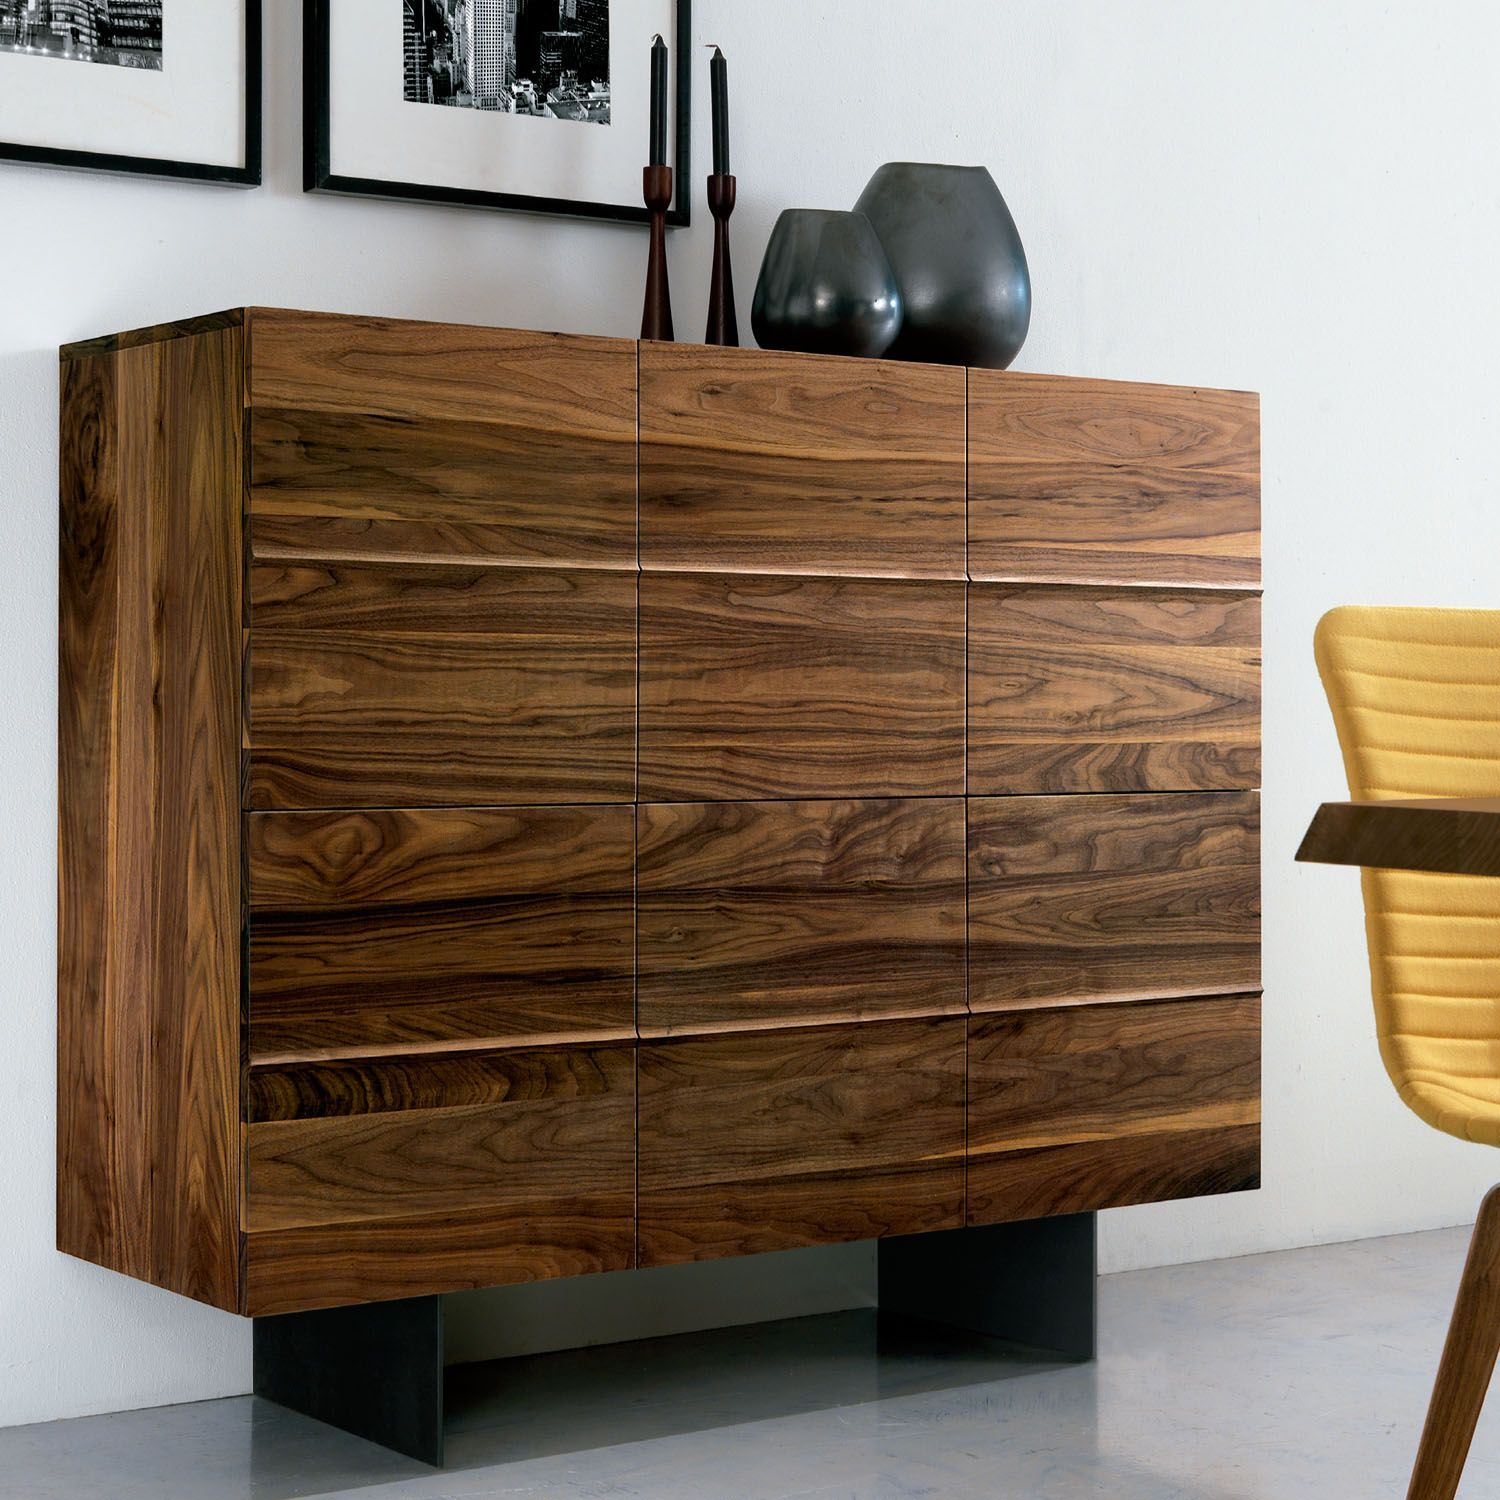 Mueble Madera Natural Aparador Horizon De Oliver B Group Pon Este Bonito